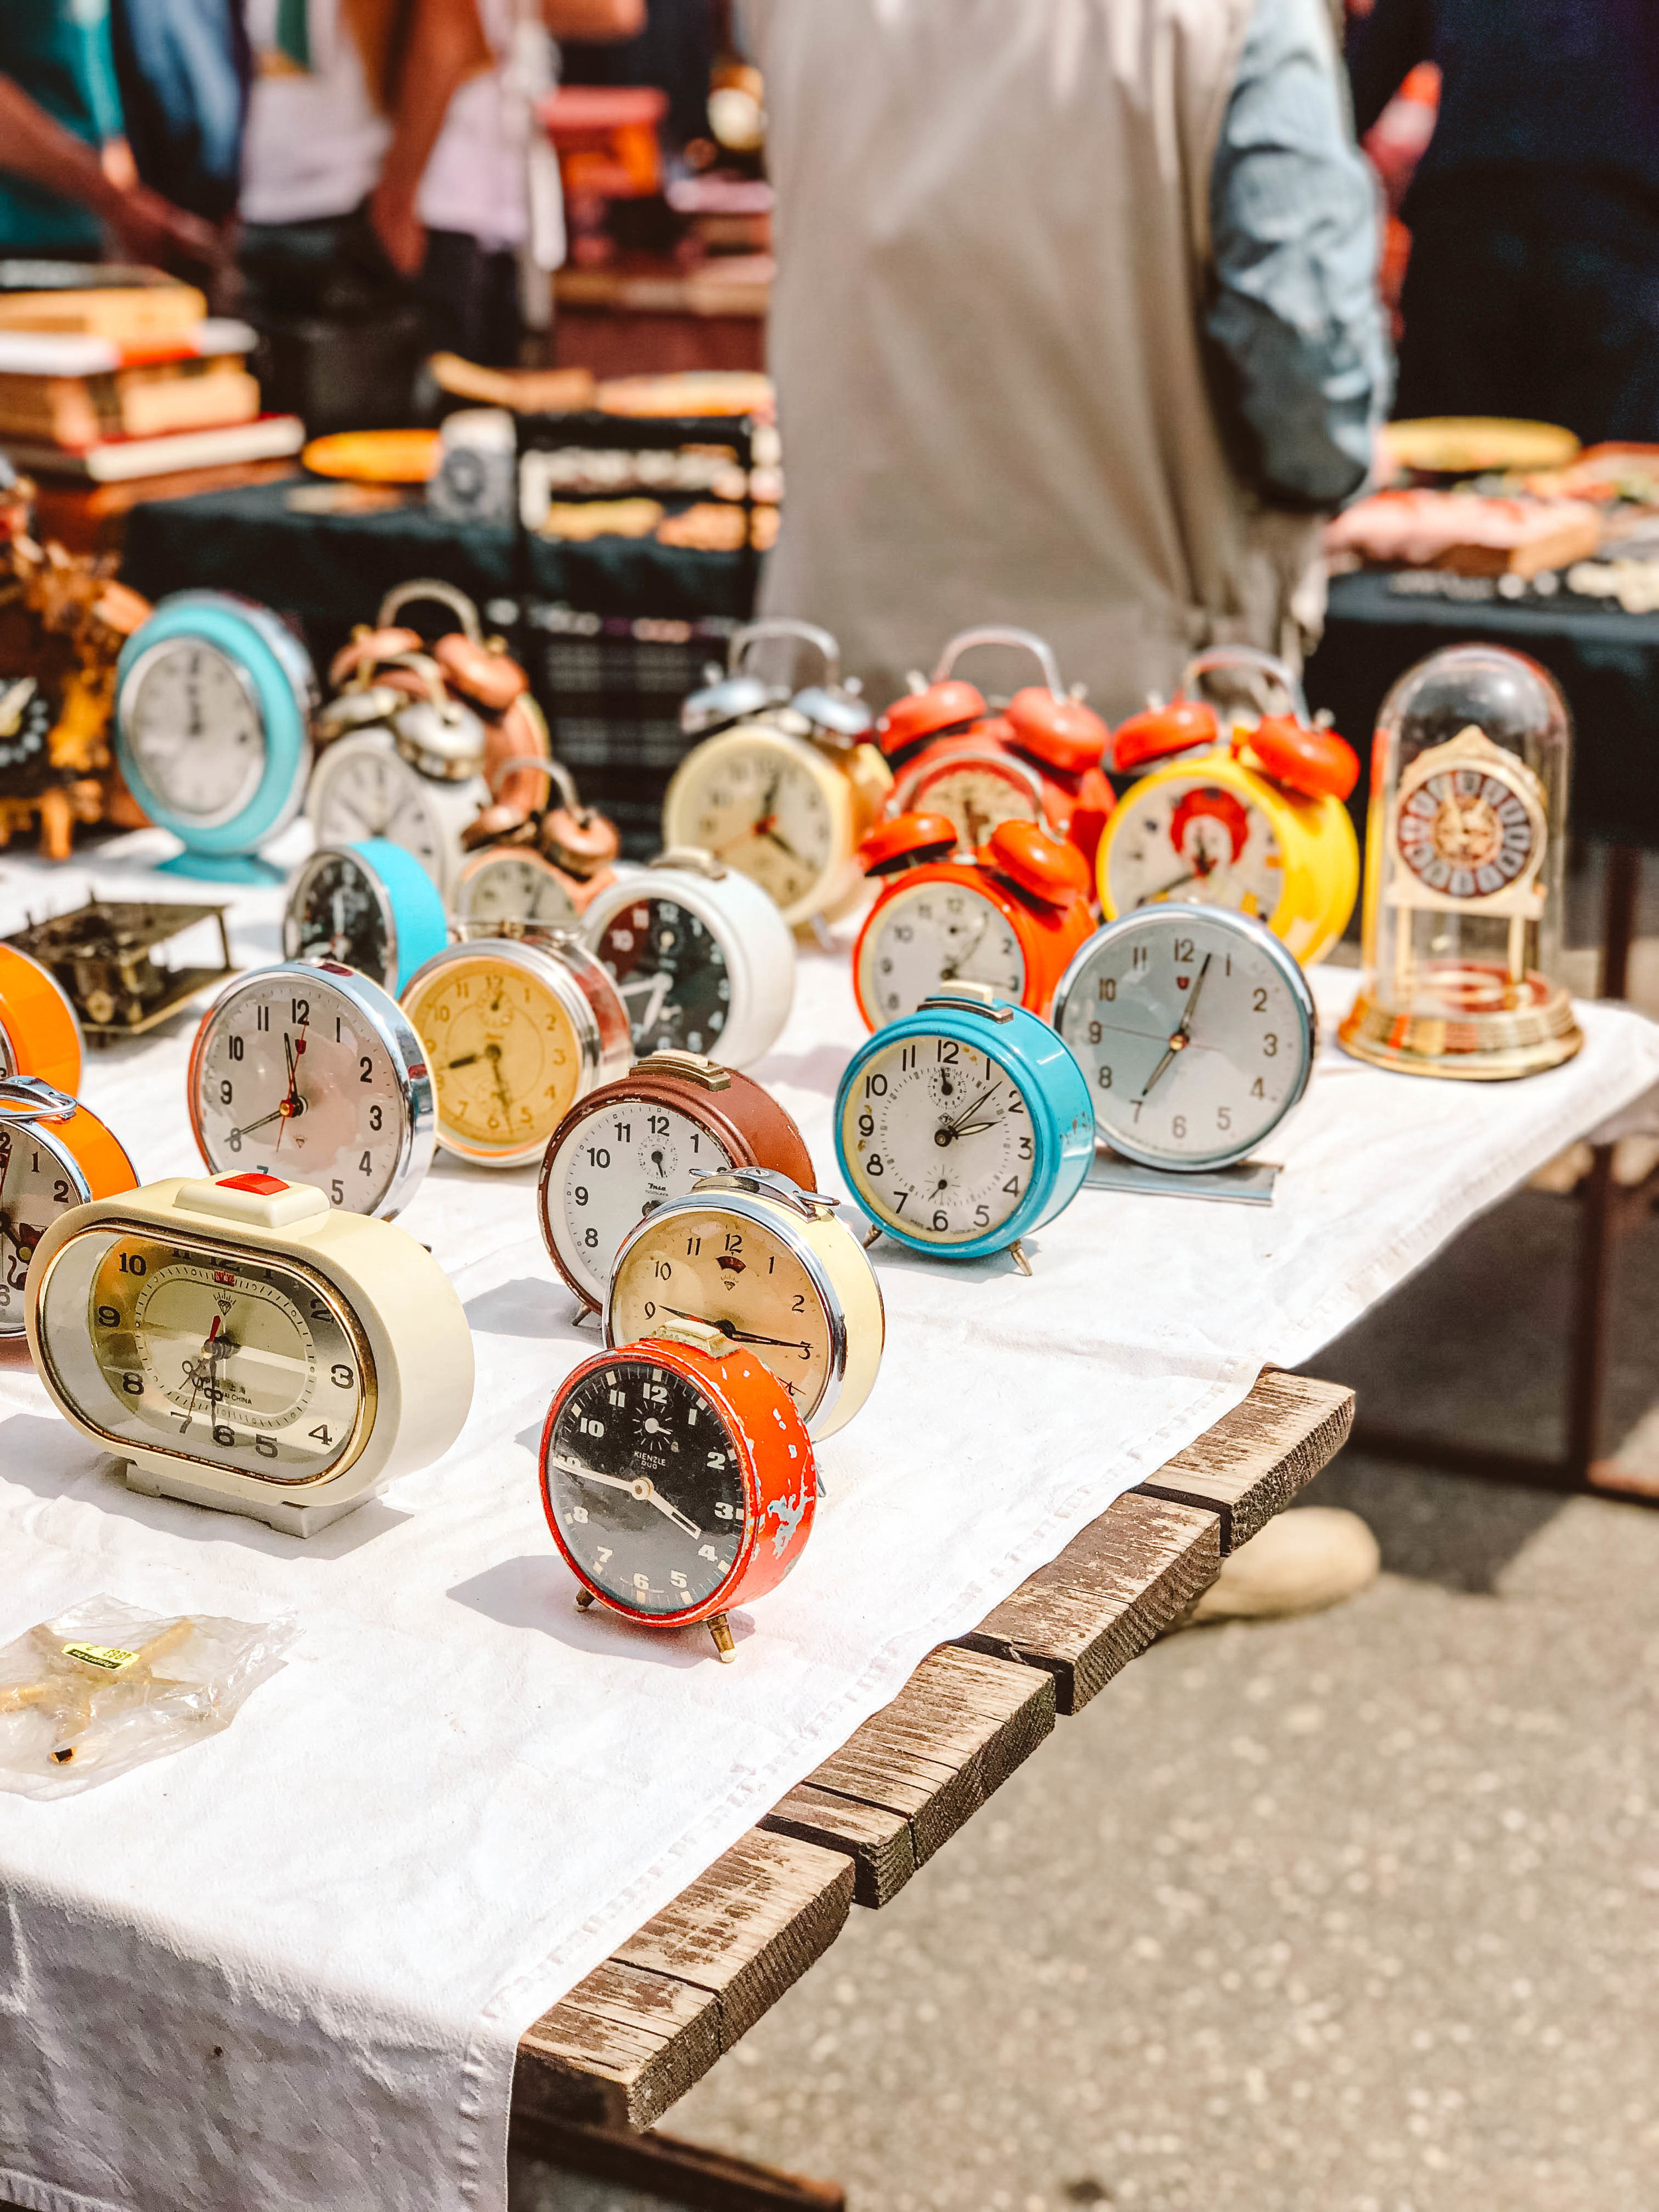 Zagreb Antique fair clocks.jpg